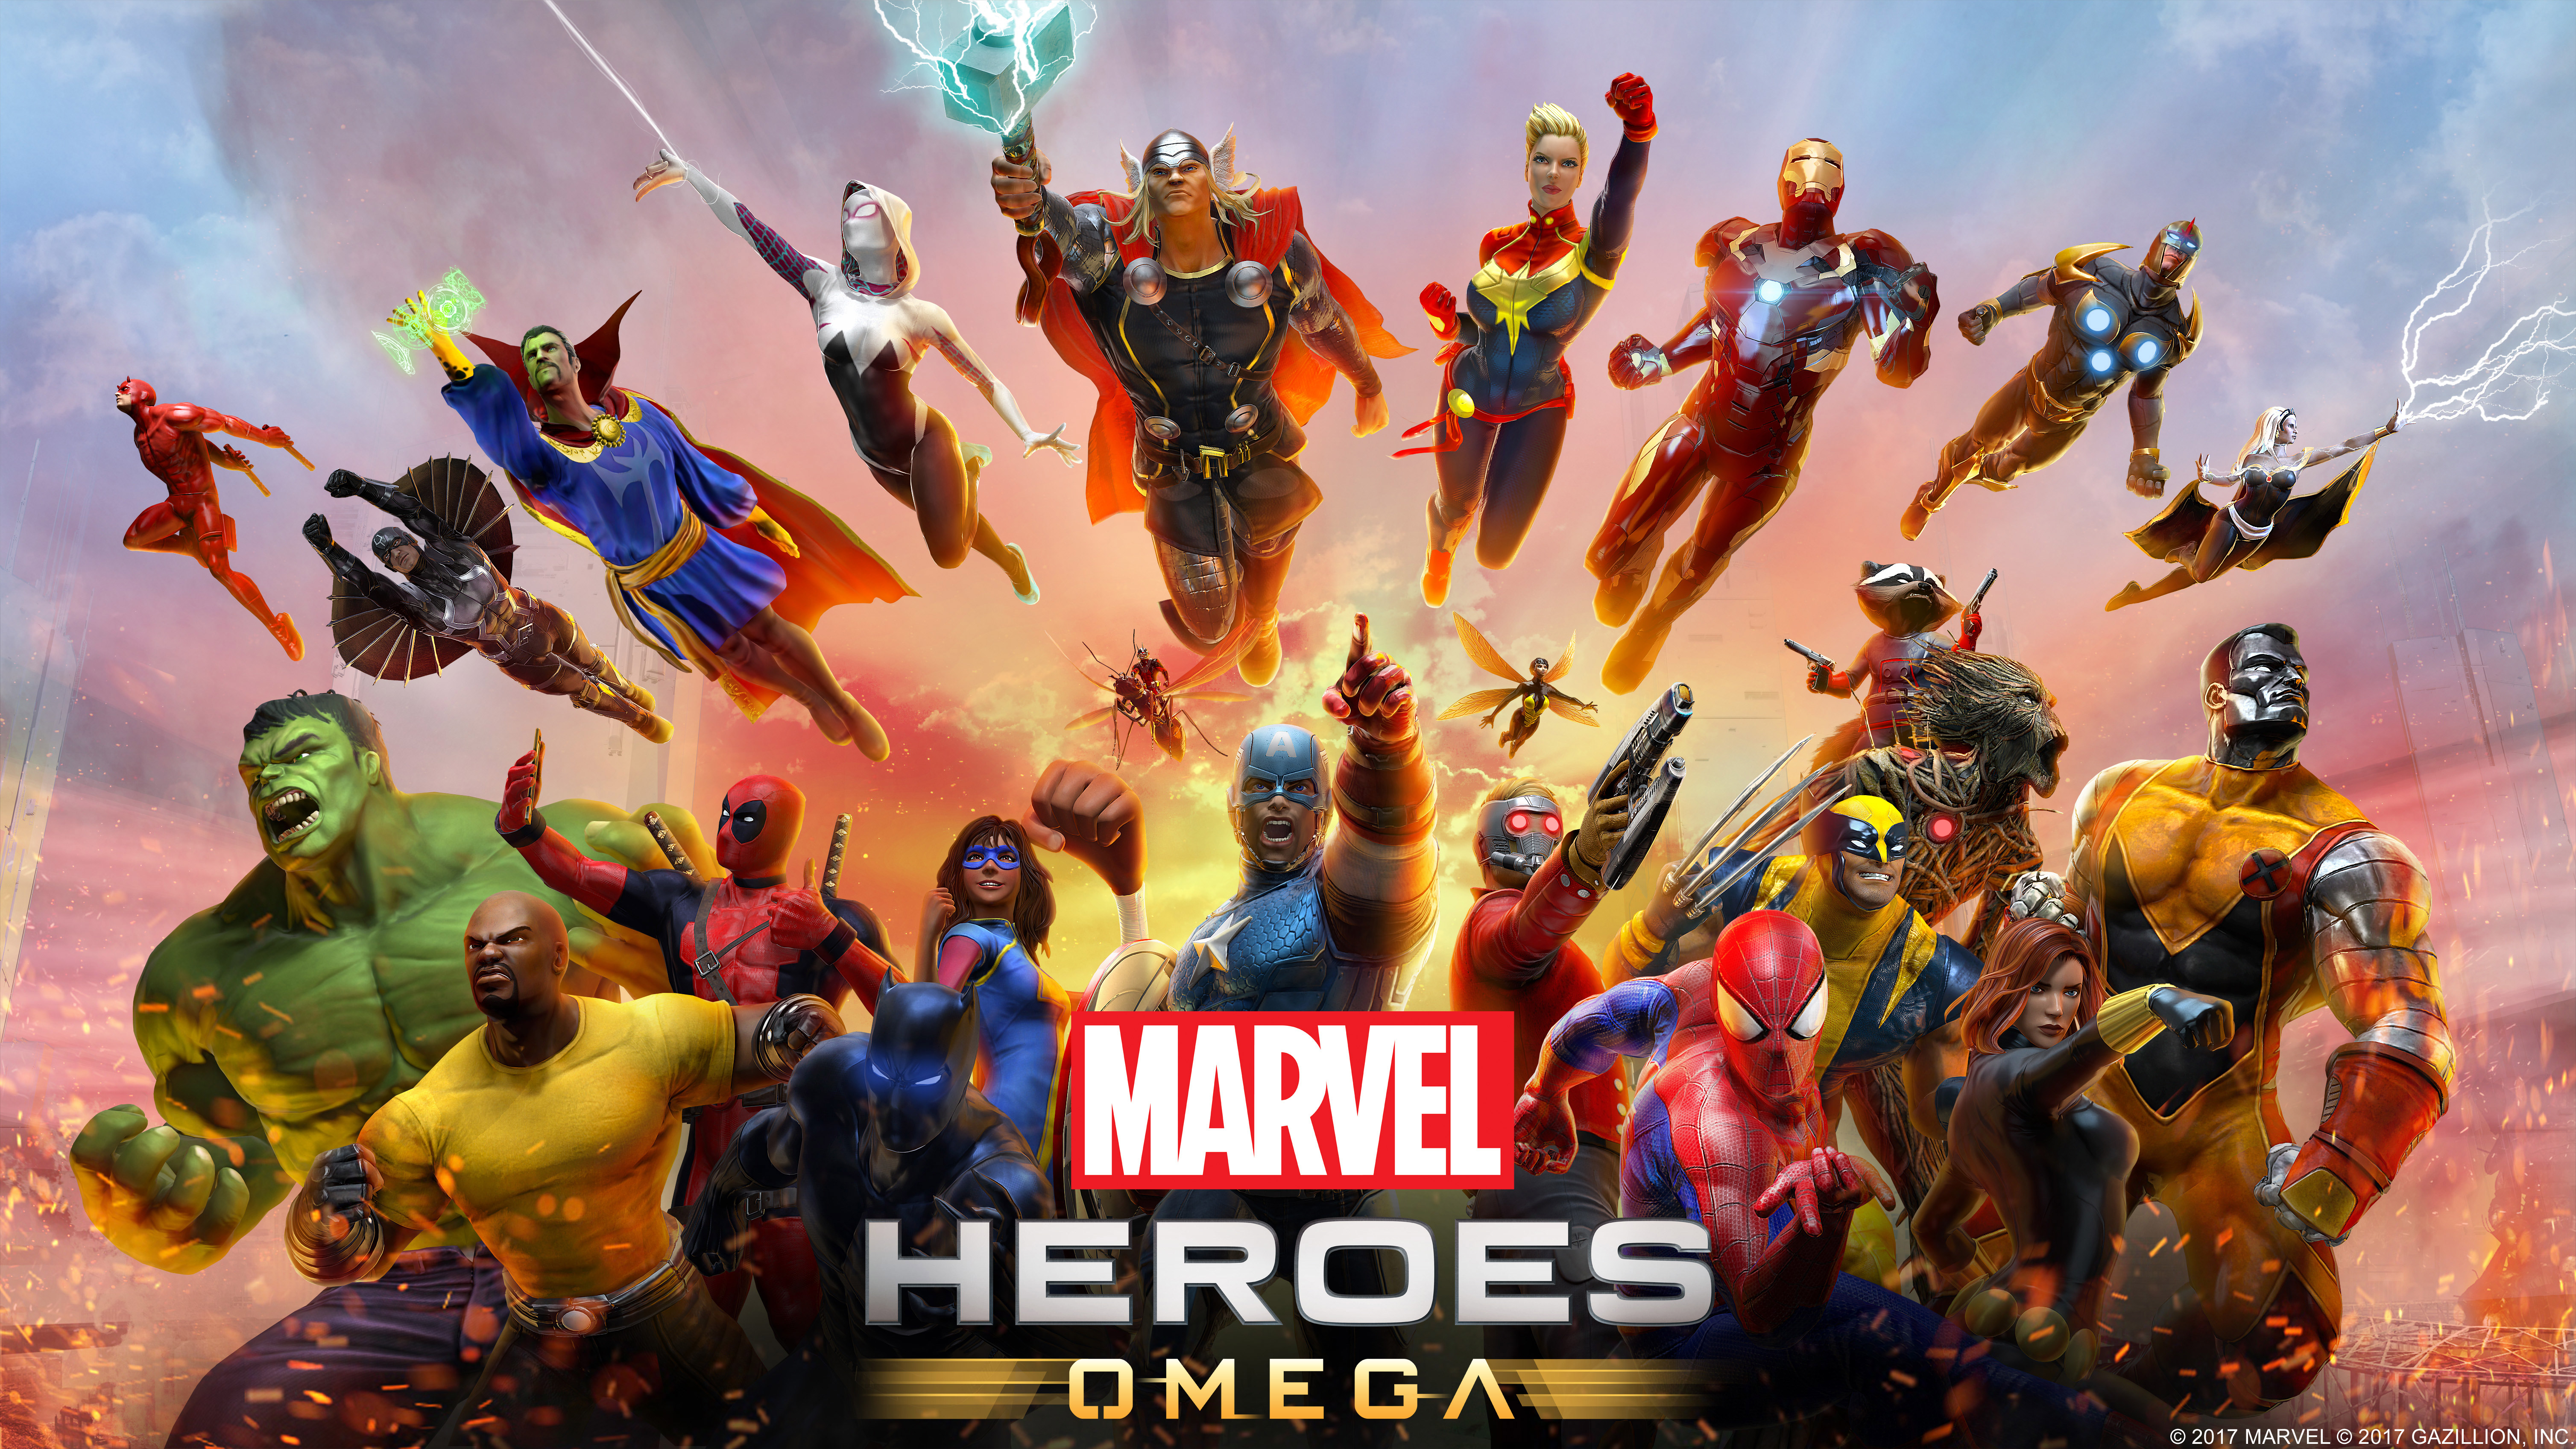 Marvel Heroes Omega HD Games 4k Wallpapers Images Backgrounds